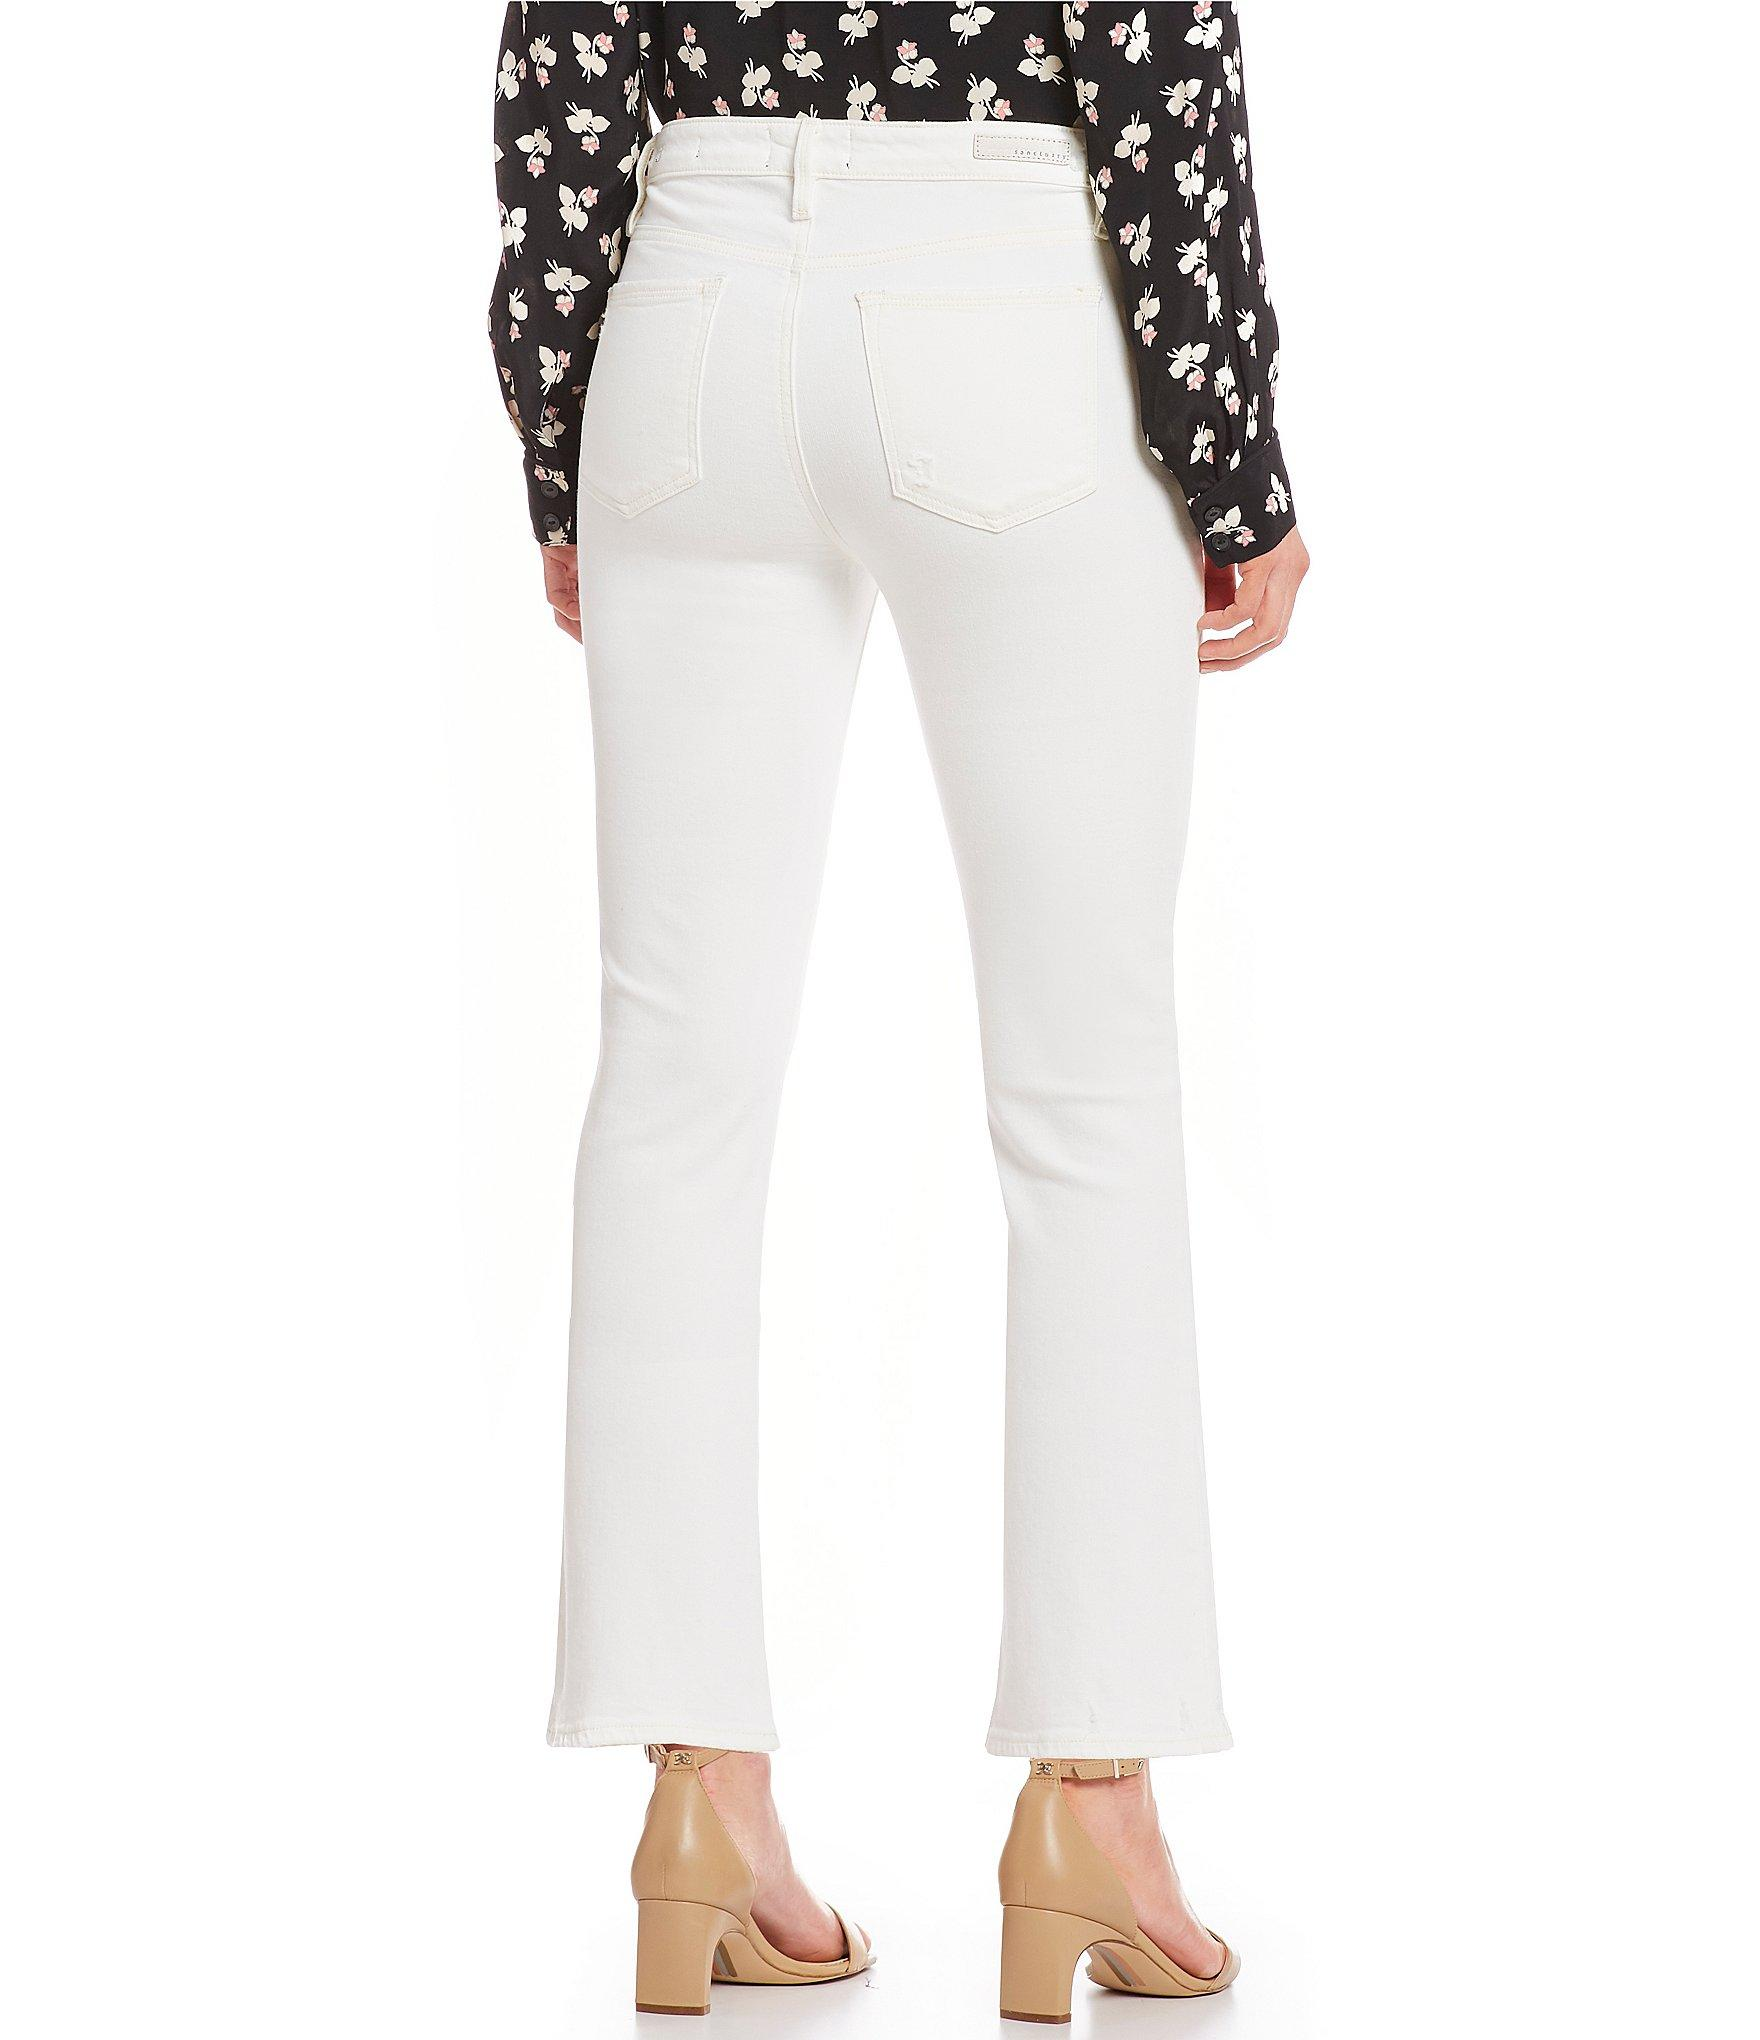 b26b1dfd Sanctuary - White Connector Kick Crop Exposed Fly Jeans - Lyst. View  fullscreen